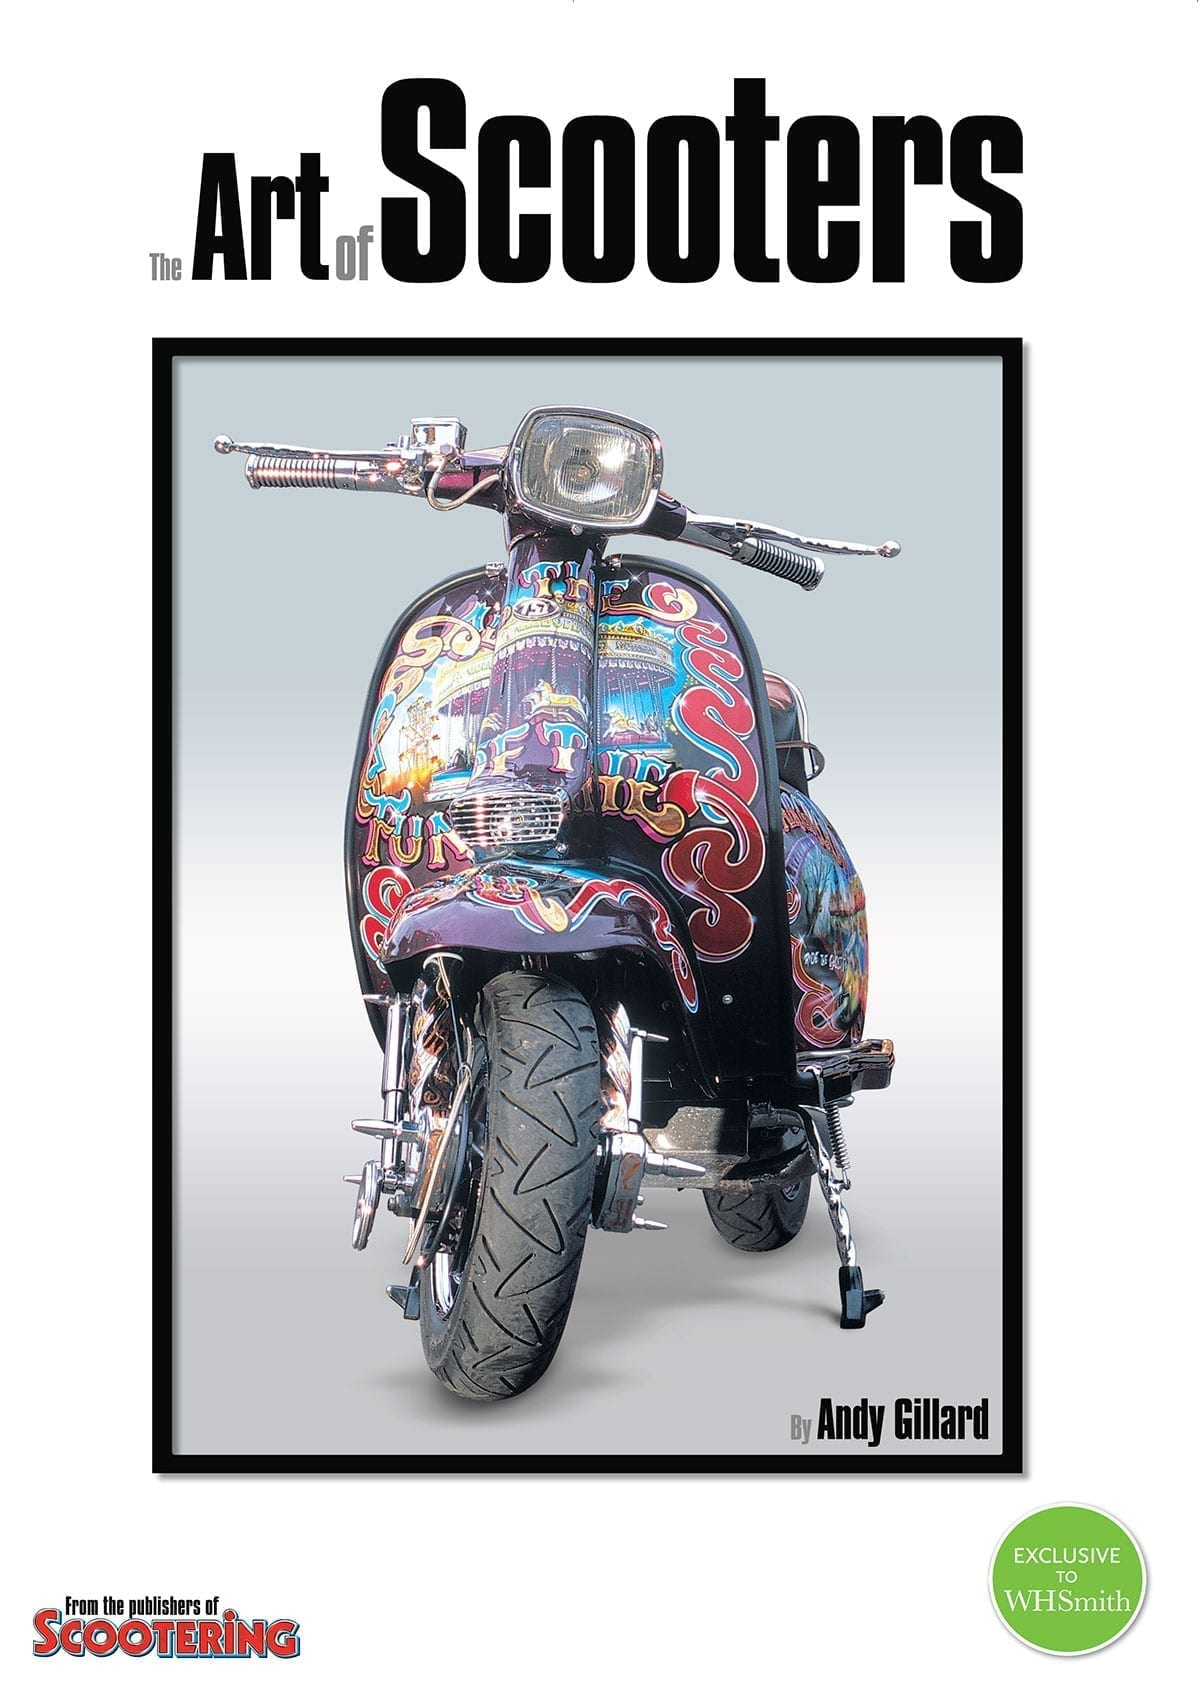 Art of Scooters